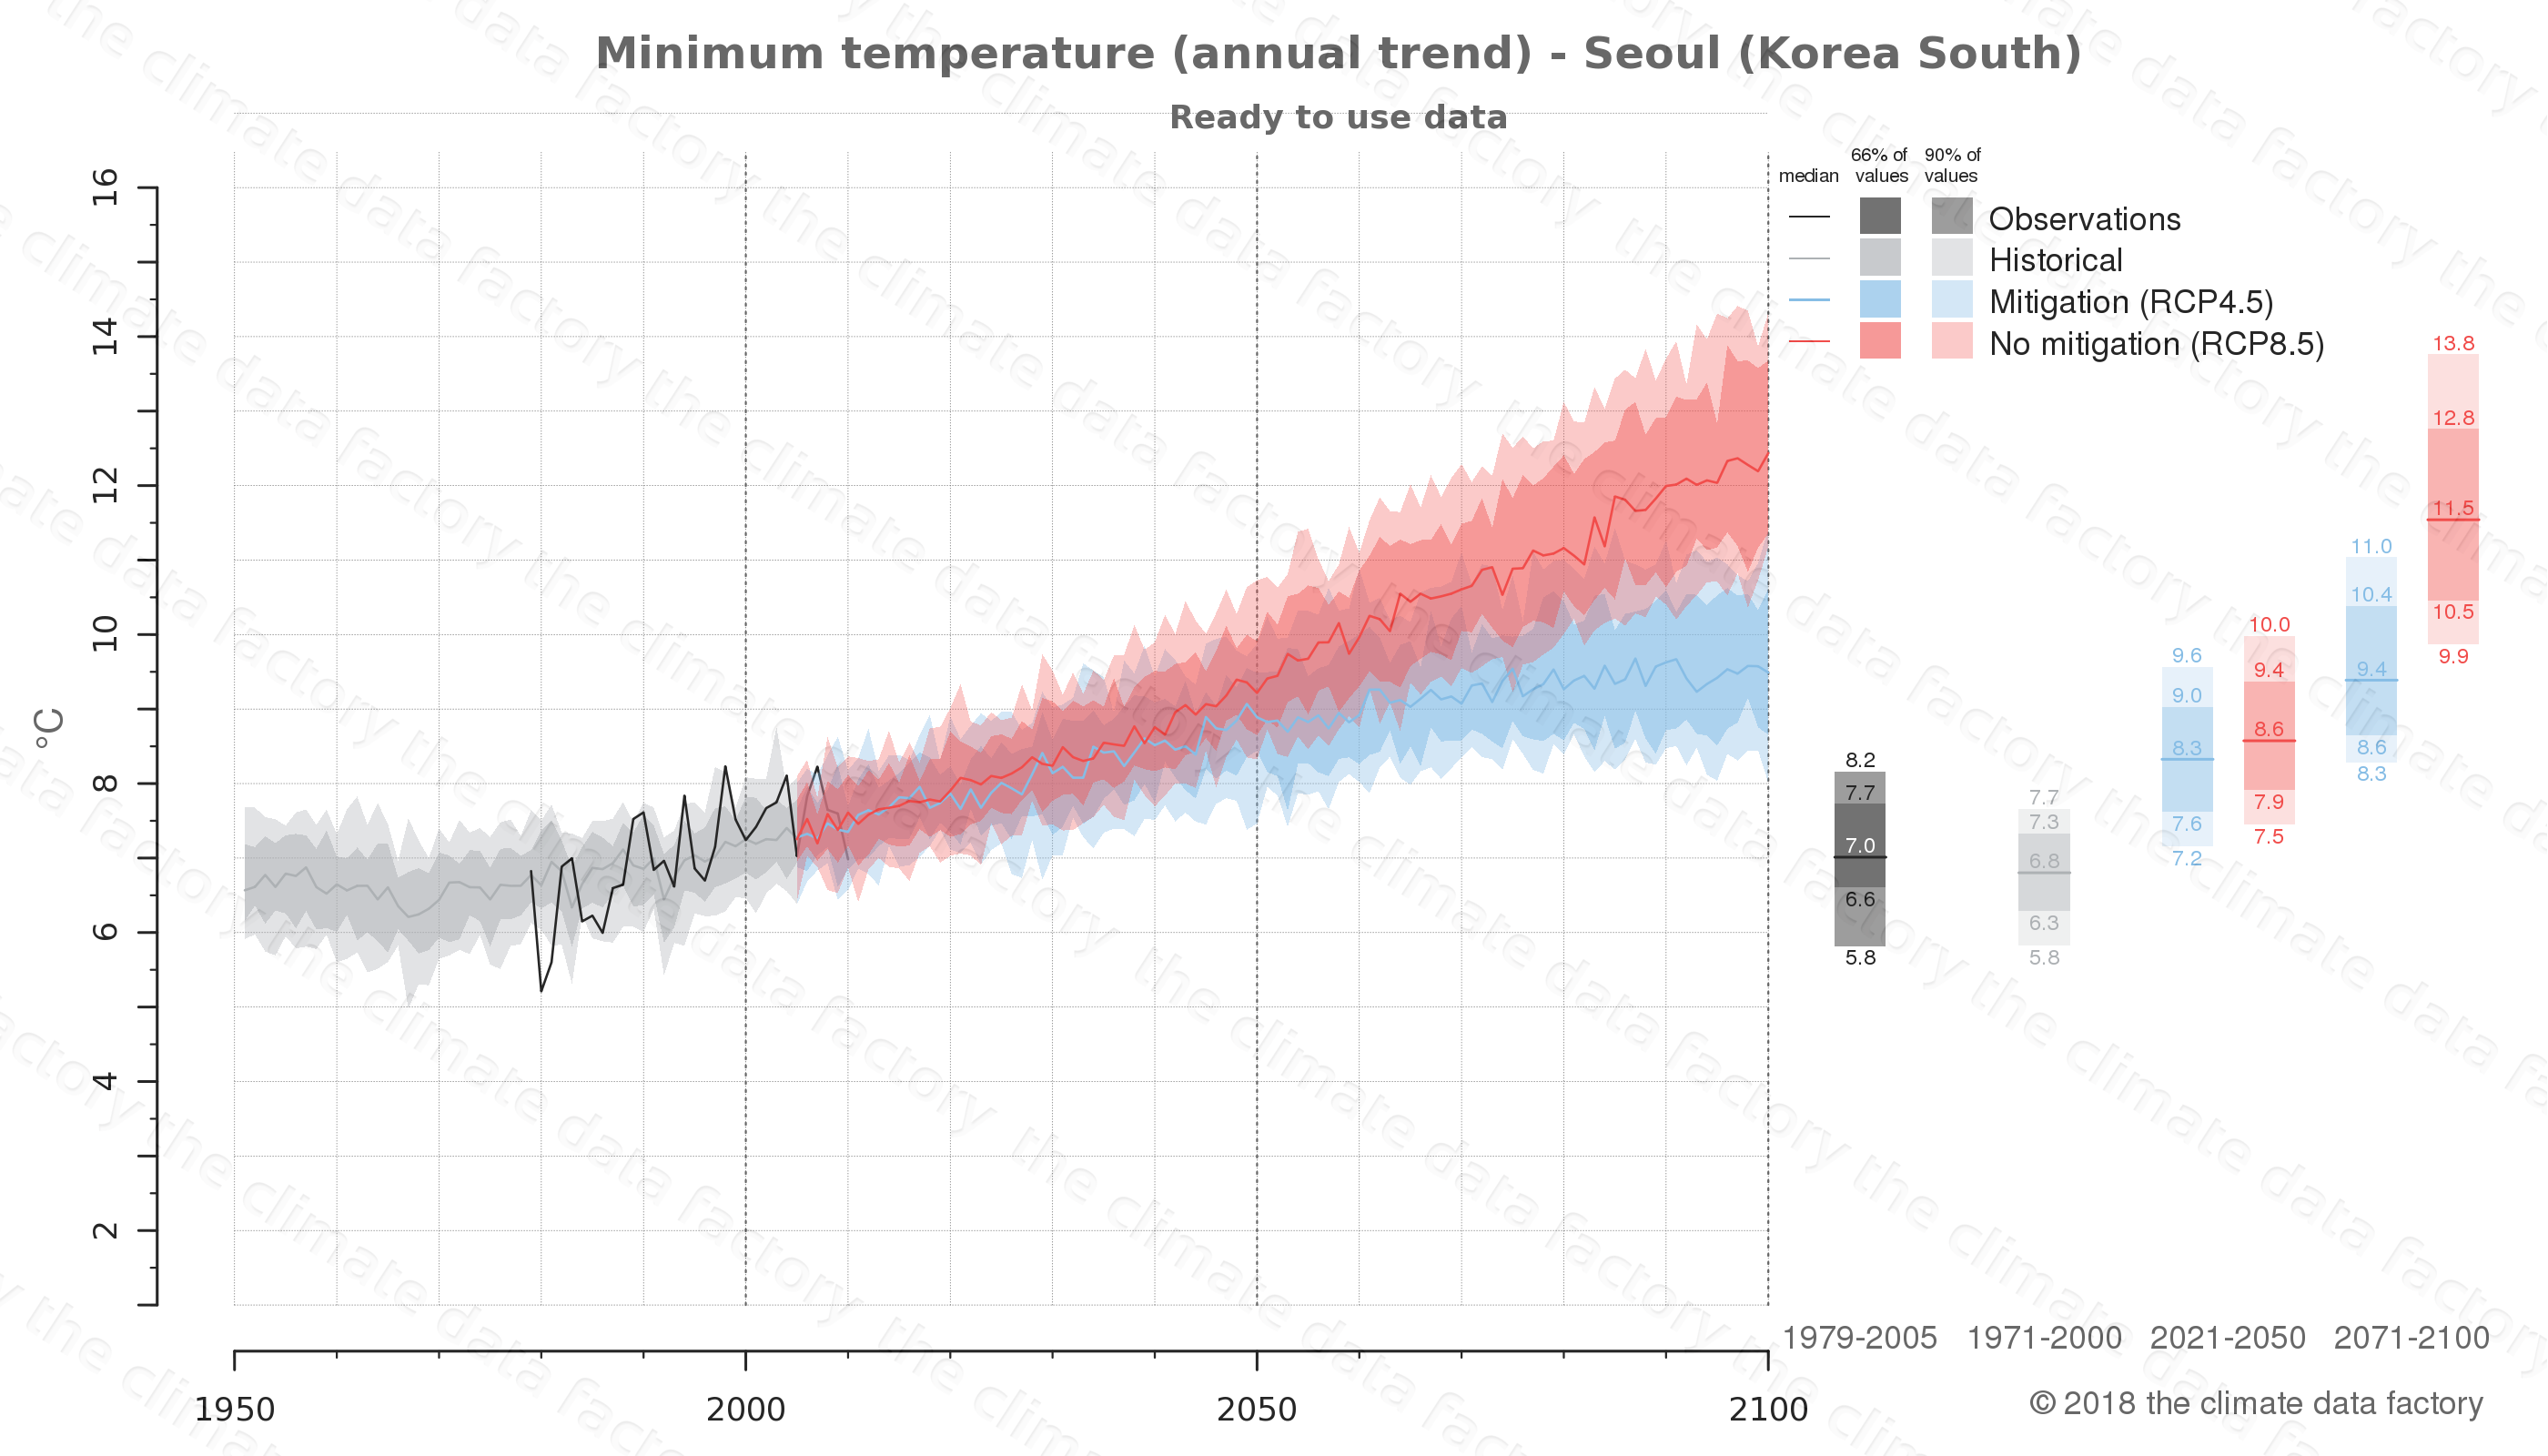 climate change data policy adaptation climate graph city data minimum-temperature seoul south korea